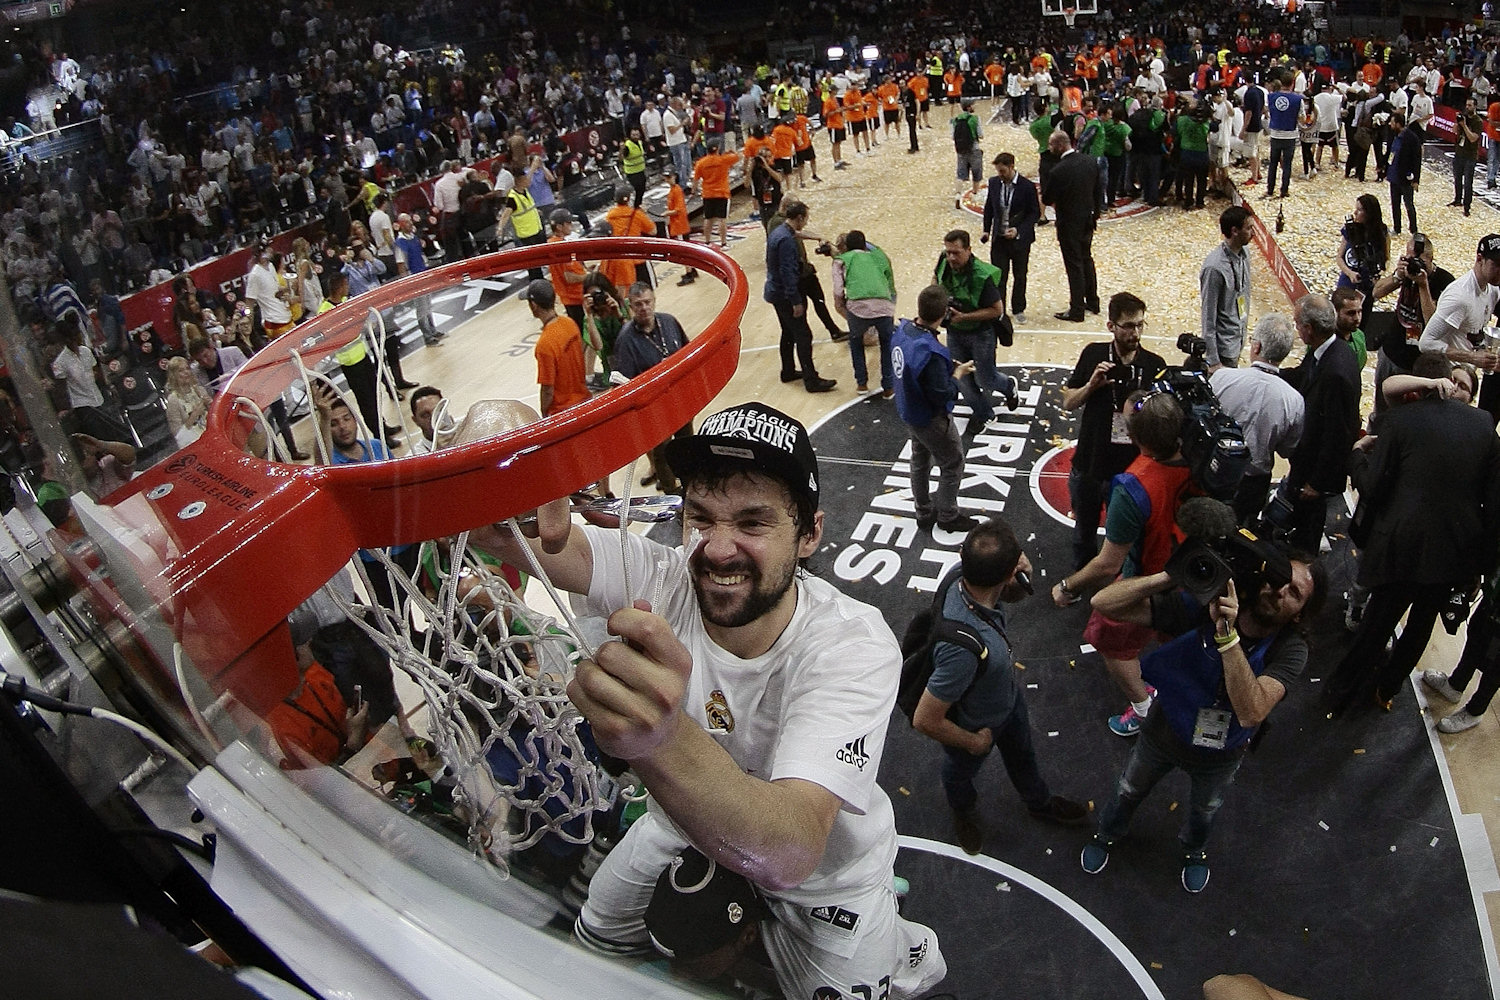 Sergio Llull - Real Madrid is the new champ Euroleague 2014-15 - Final Four Madrid 2015 - EB14